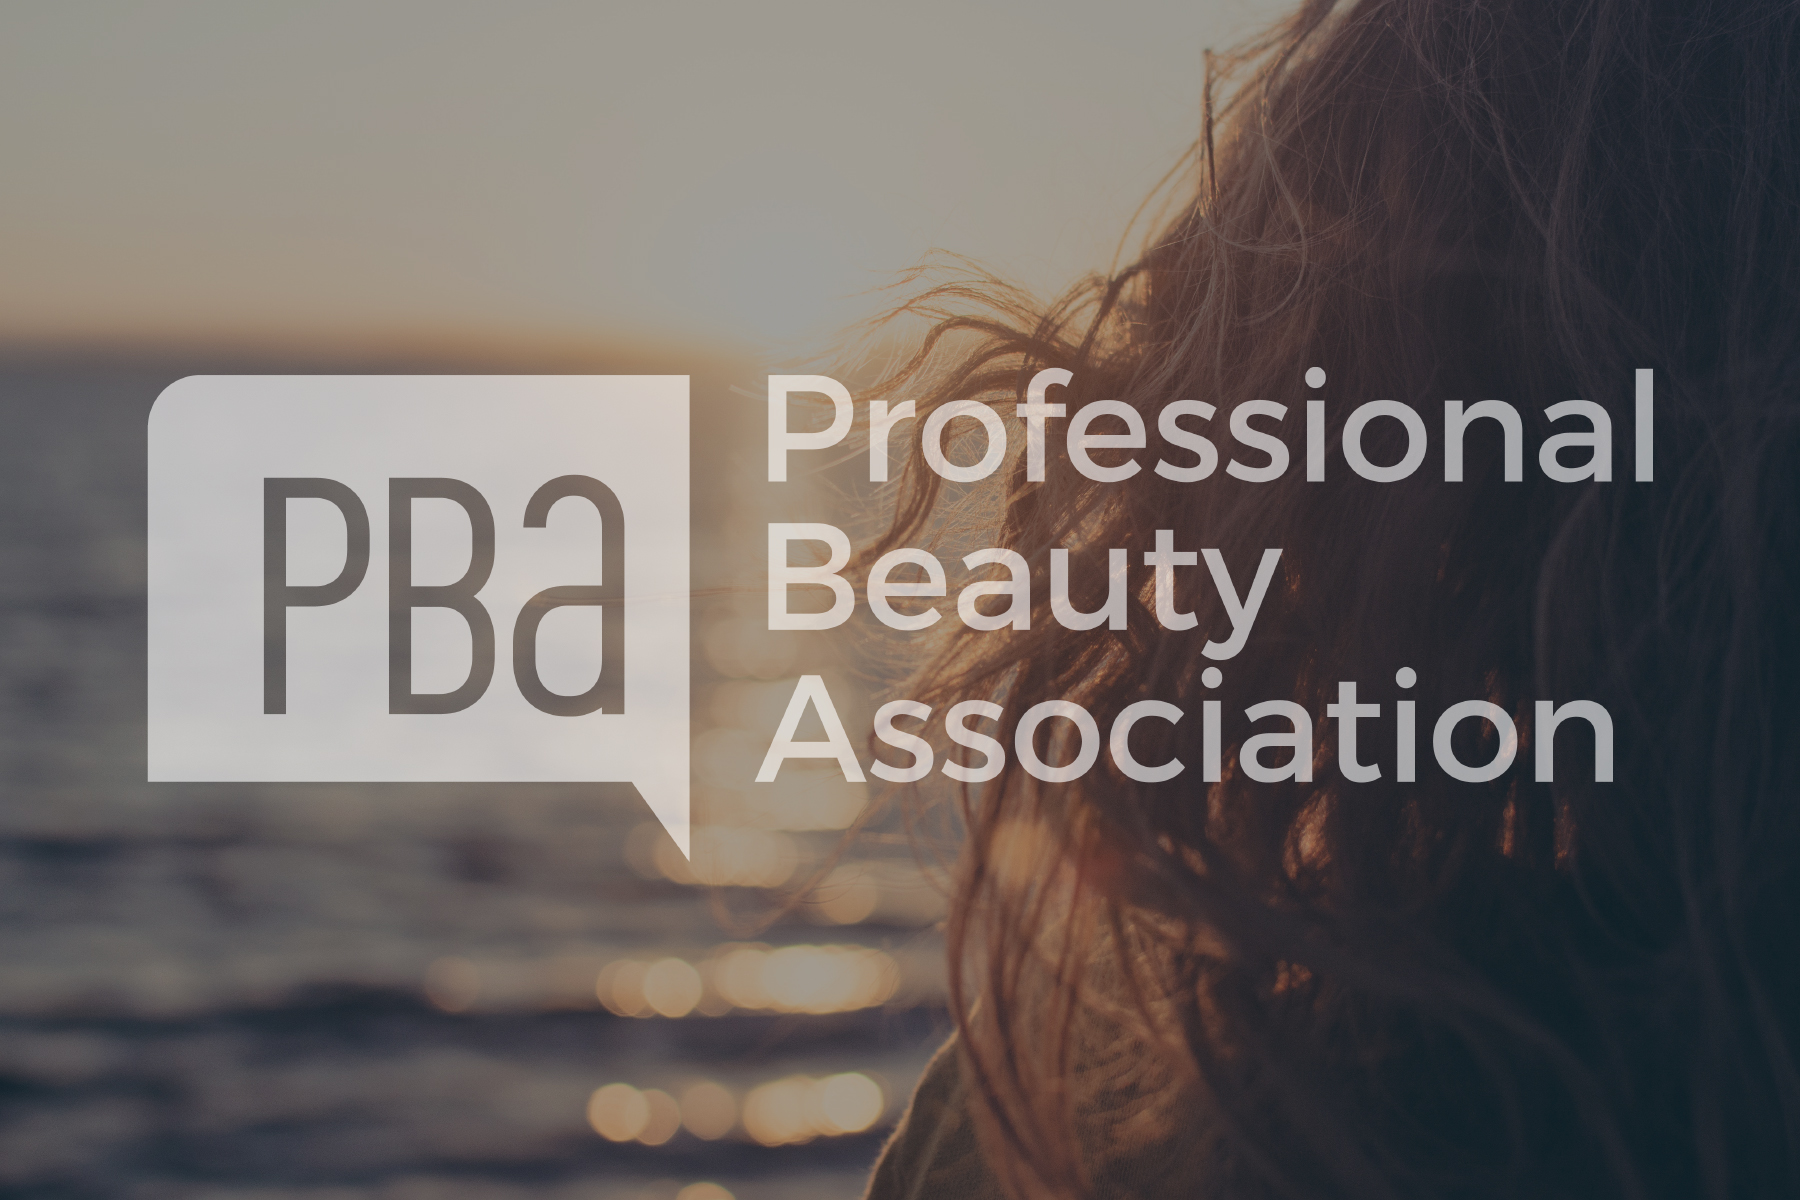 Professional Beauty Association - The Professional Beauty Association (PBA) advances the professional beauty industry by providing our members with education, charitable outreach, government advocacy, events and more. Probeauty is the largest organization of salon professionals with members representing salons/spas, distributors, manufacturers and beauty professionals/NCA.